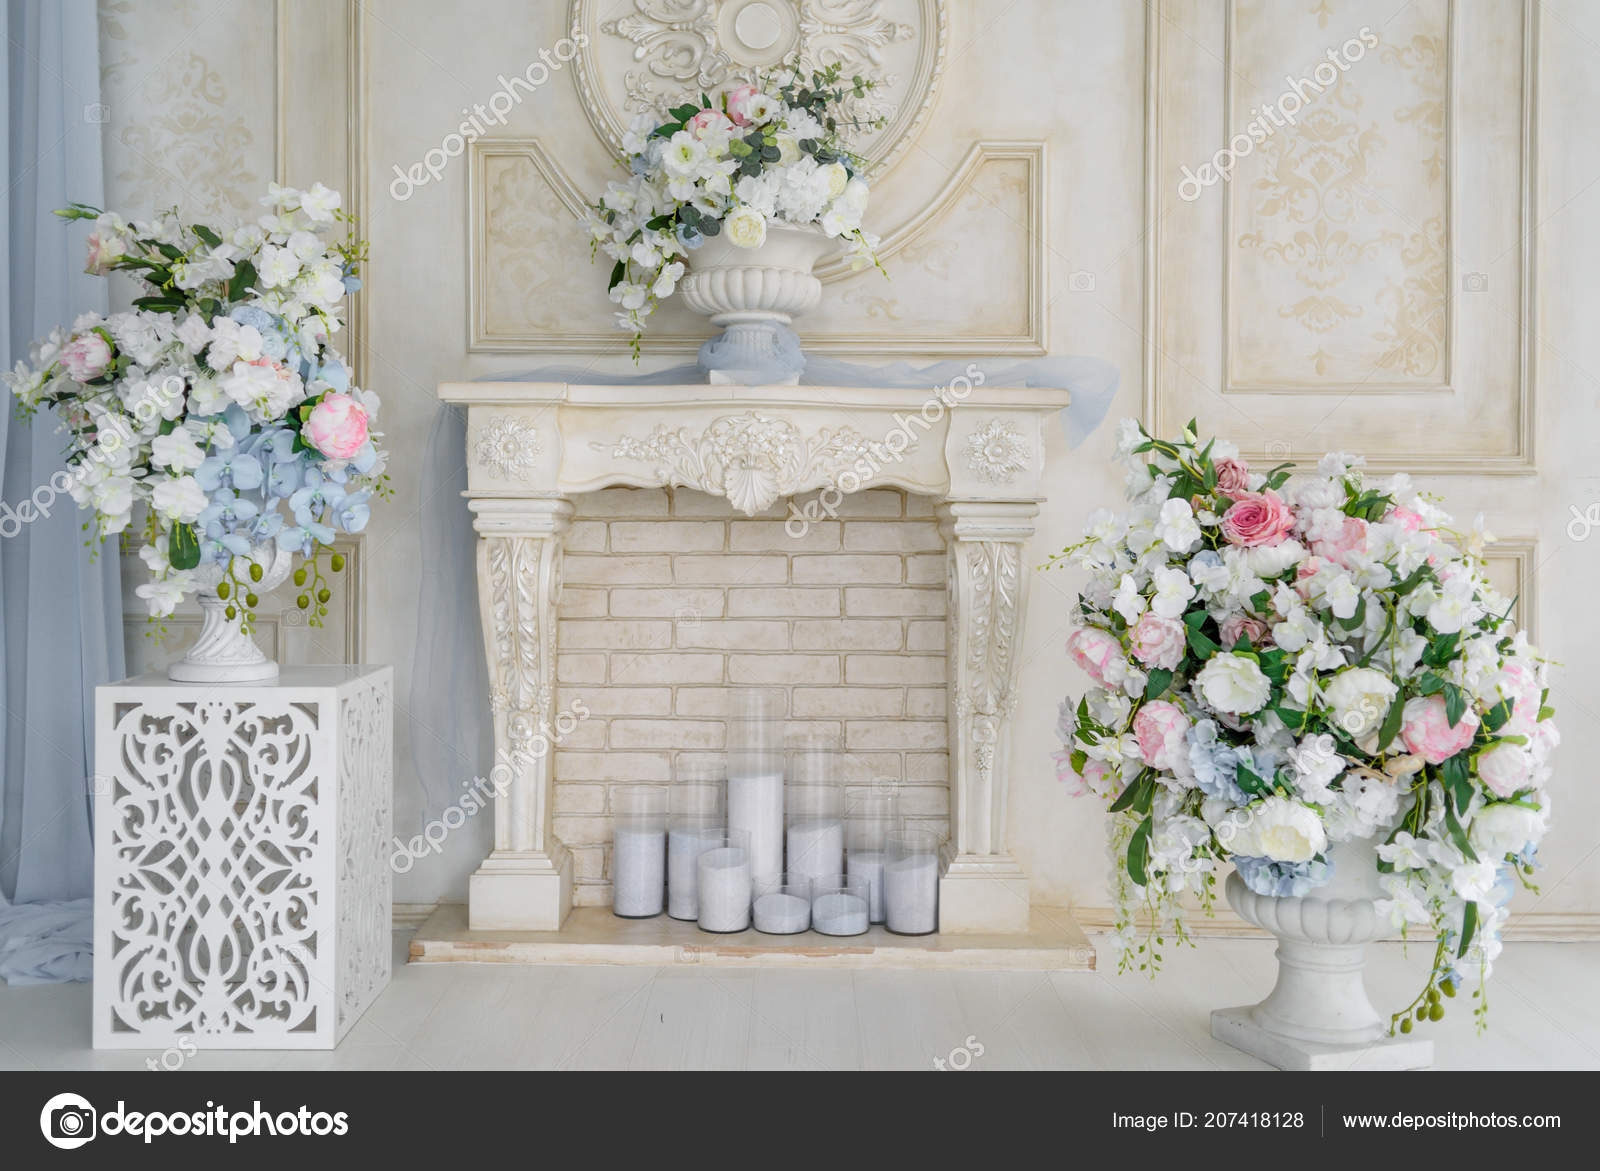 Decorative Fireplace Flowers Candles Brick Wall Room Free Space Floral Stock Photo Image By C D Duda 207418128